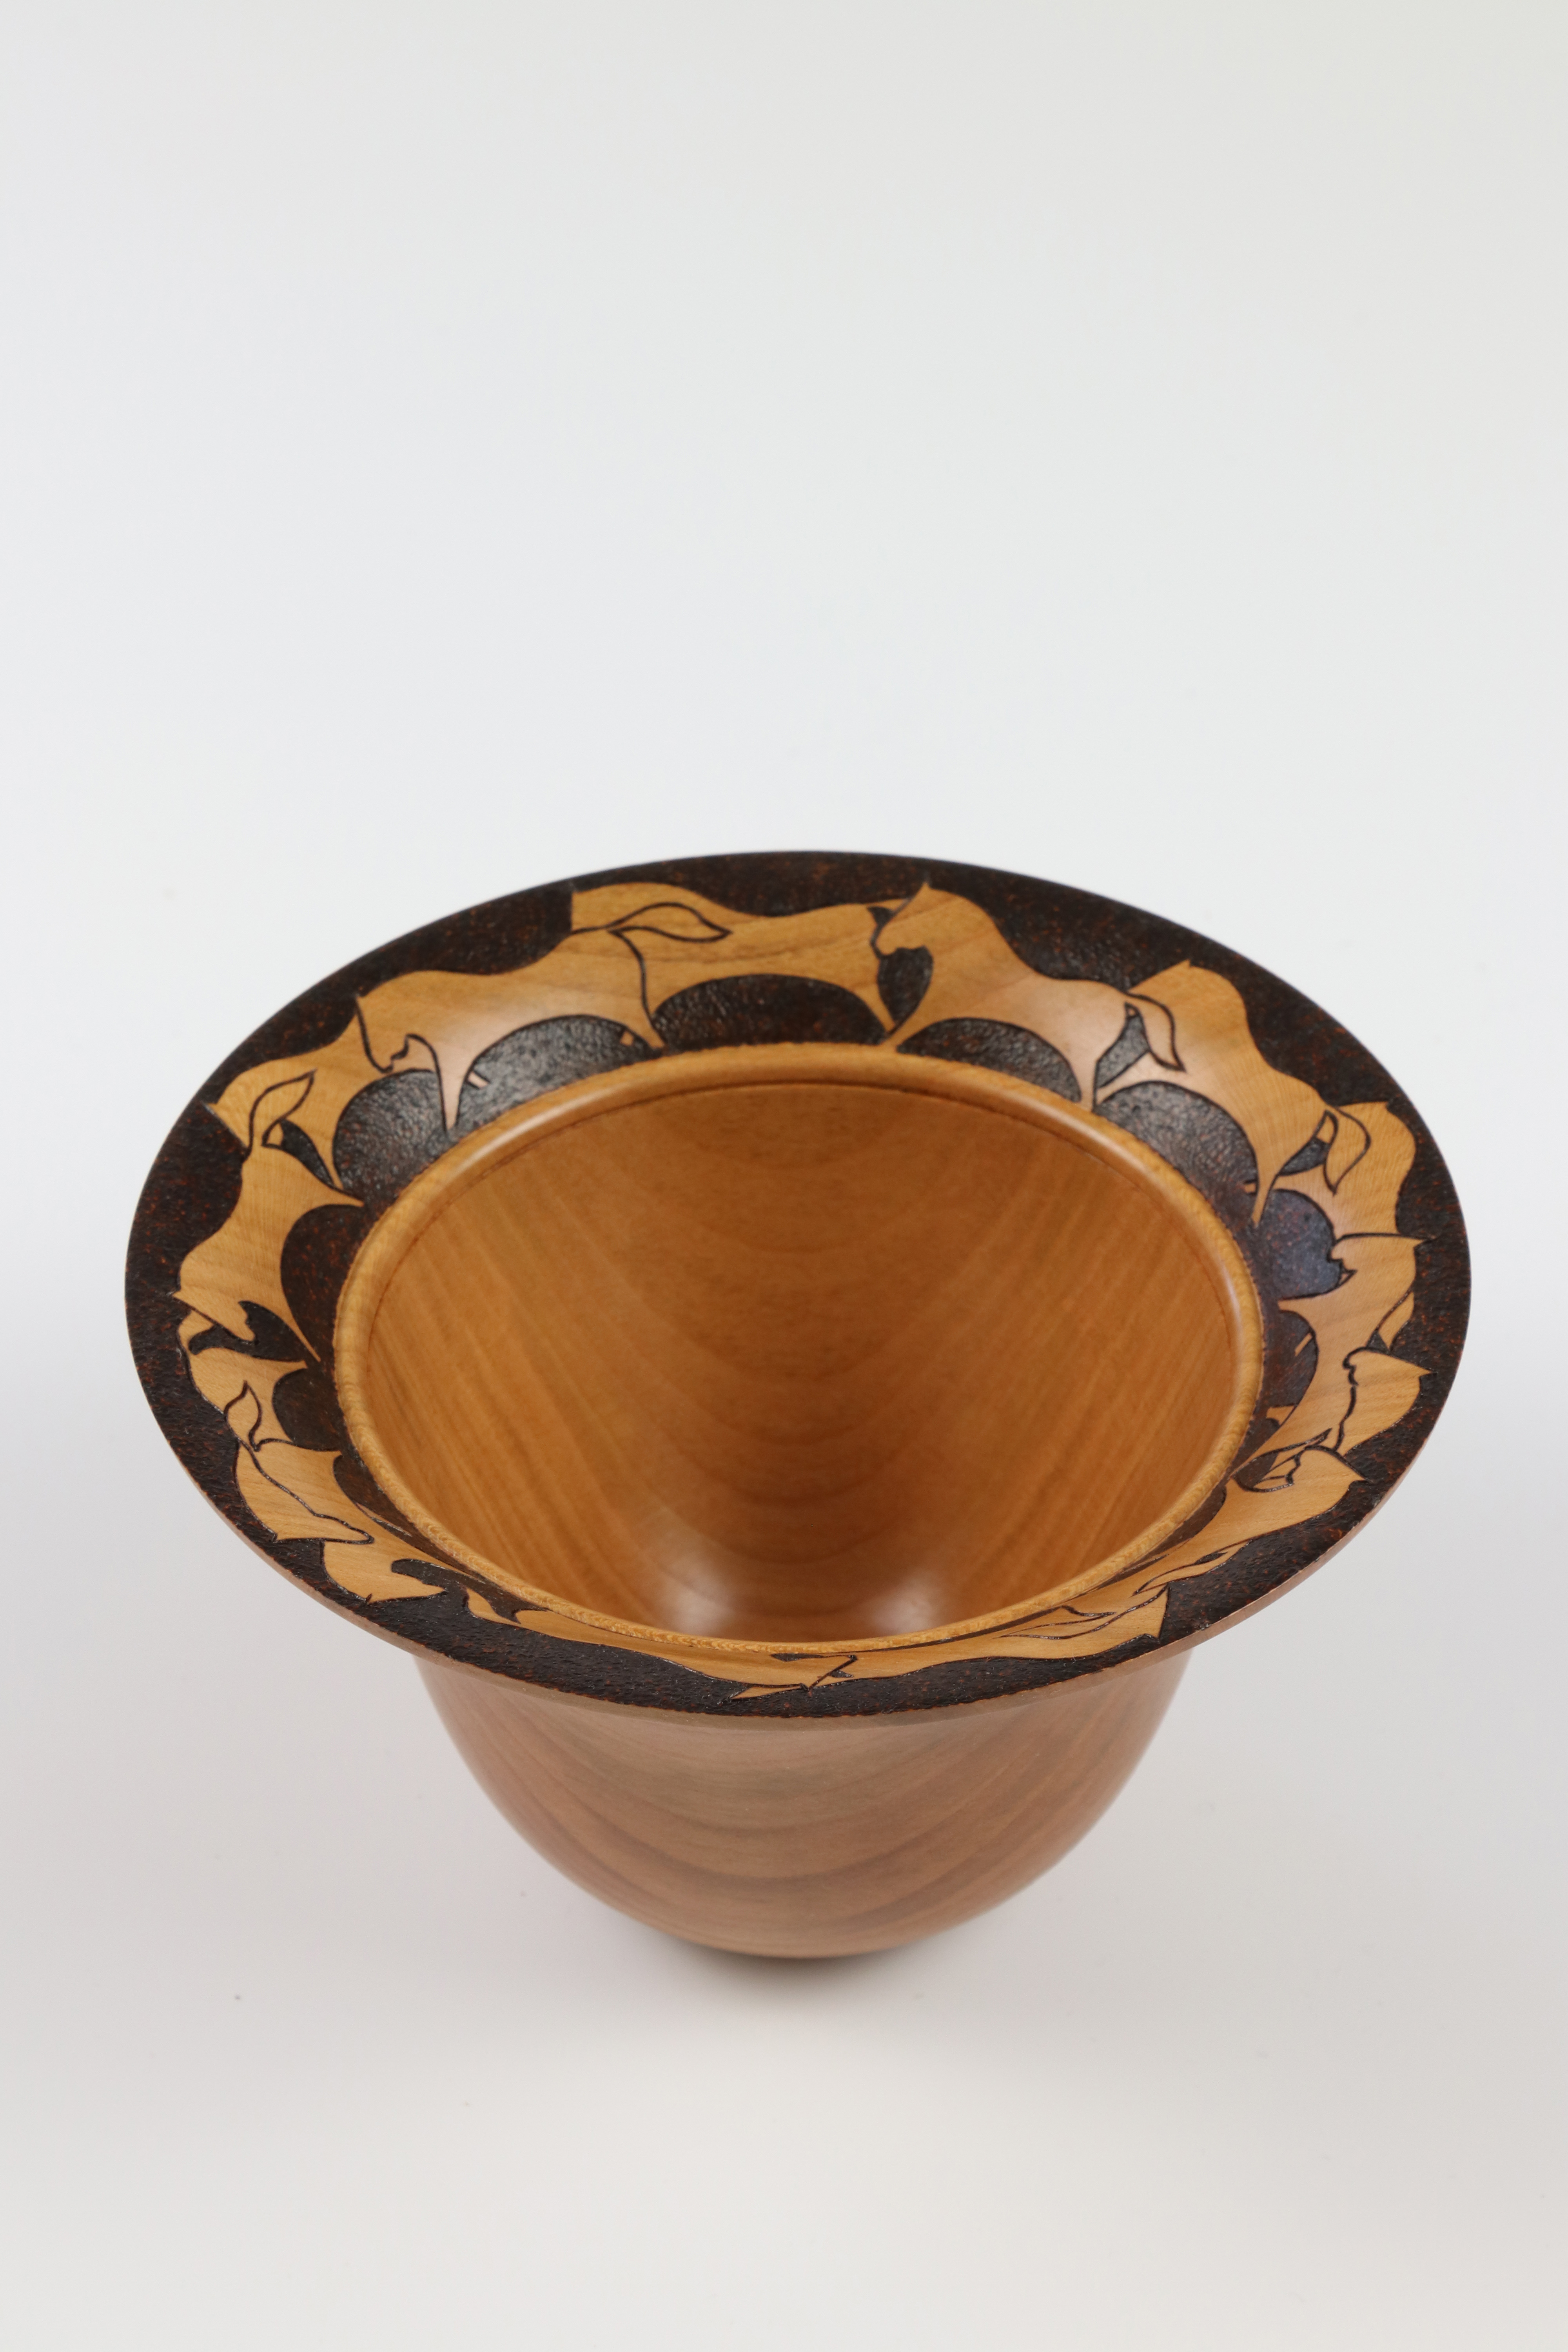 Lot 85 - Molly Winton (USA) canarywood decorated bowl 8x14cm. Signed